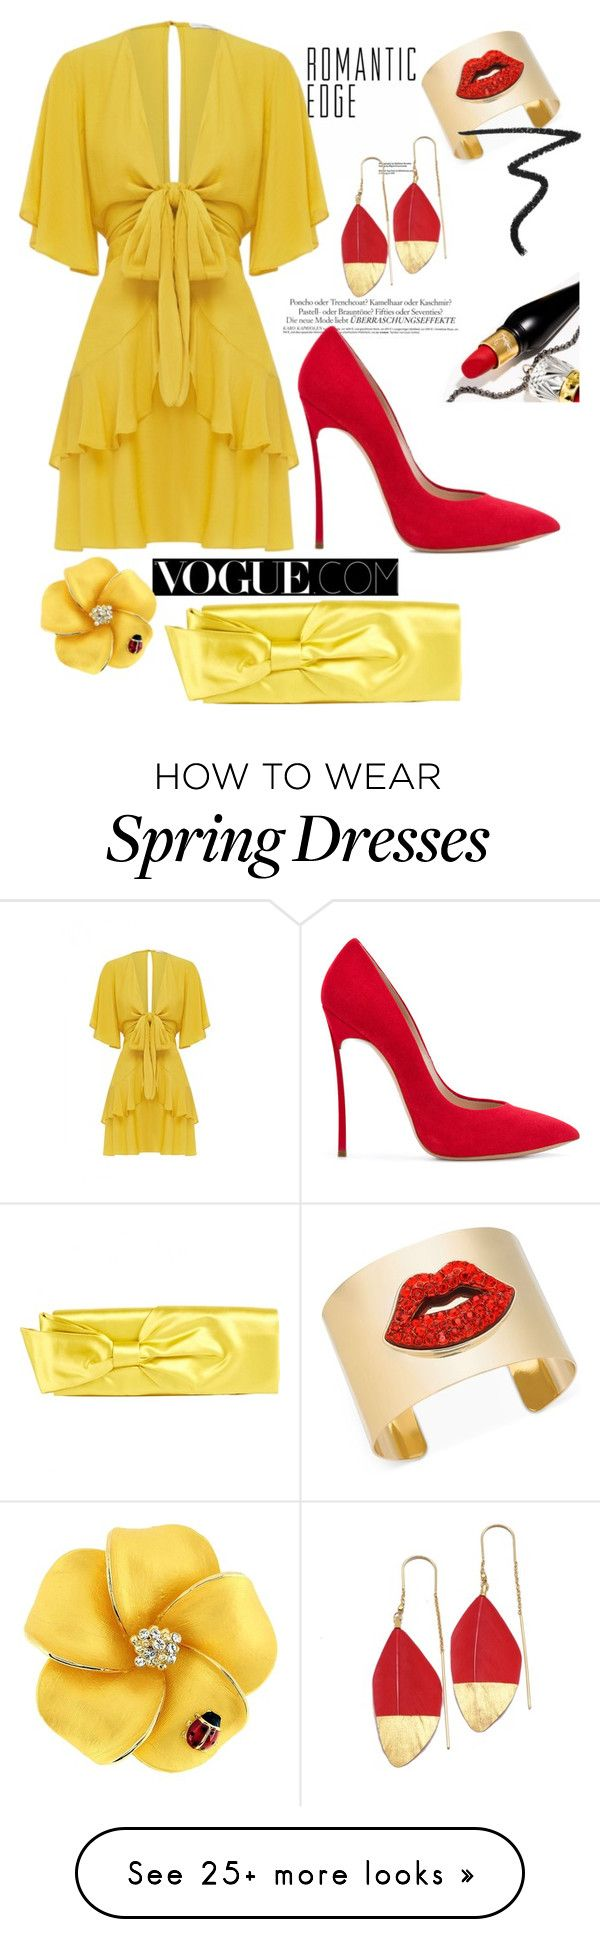 """Untitled #2459"" by csfshawn on Polyvore featuring Diane Von Furstenberg, Casadei, Christian Louboutin, Thalia Sodi and NARS Cosmetics"